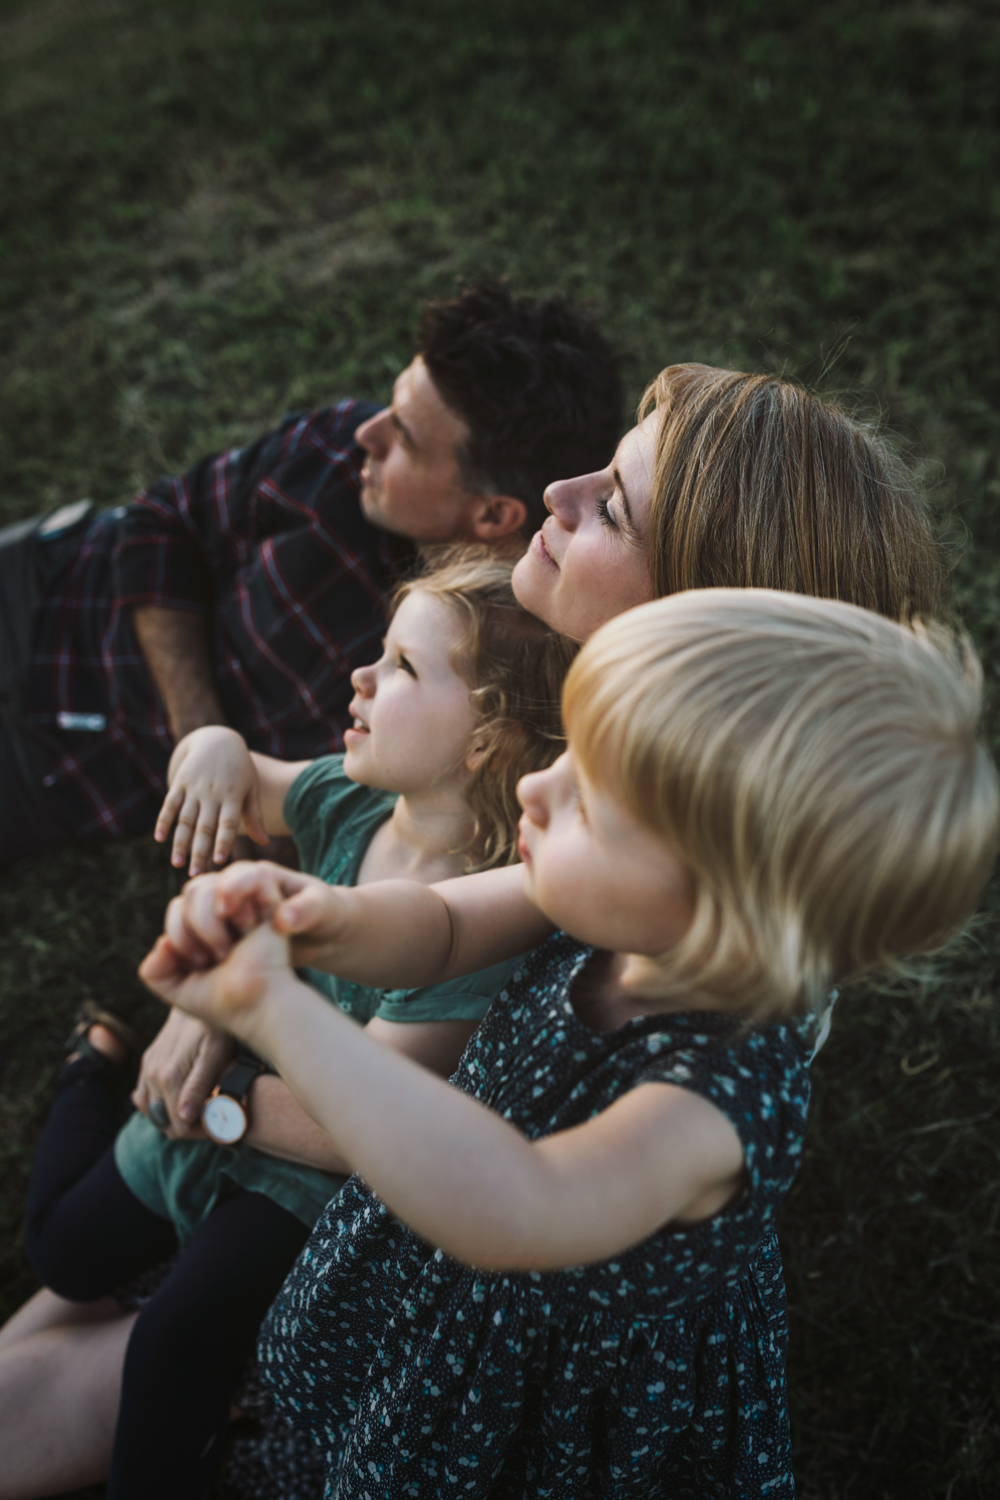 Family enjoy relaxing outside during beautiful family photo sess